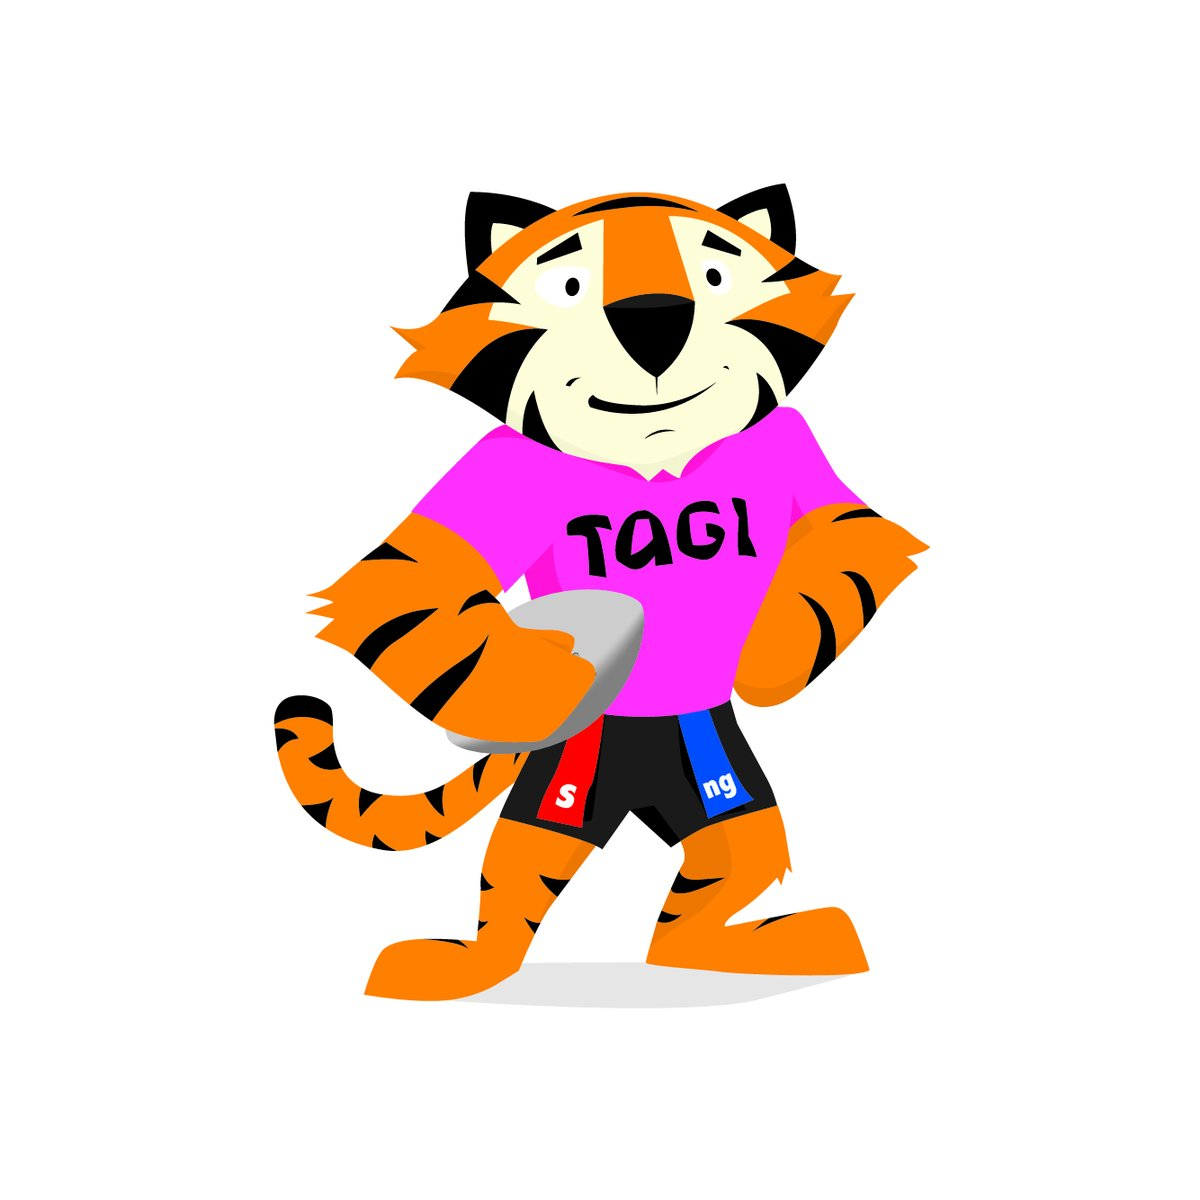 Similar things going on here @SimonPobble - a new production run of #maths resources, website development & scheduling conferences! Will we be ready in time for #SixNations? #PinkShirtDay #educatorsinpink 😀🐯